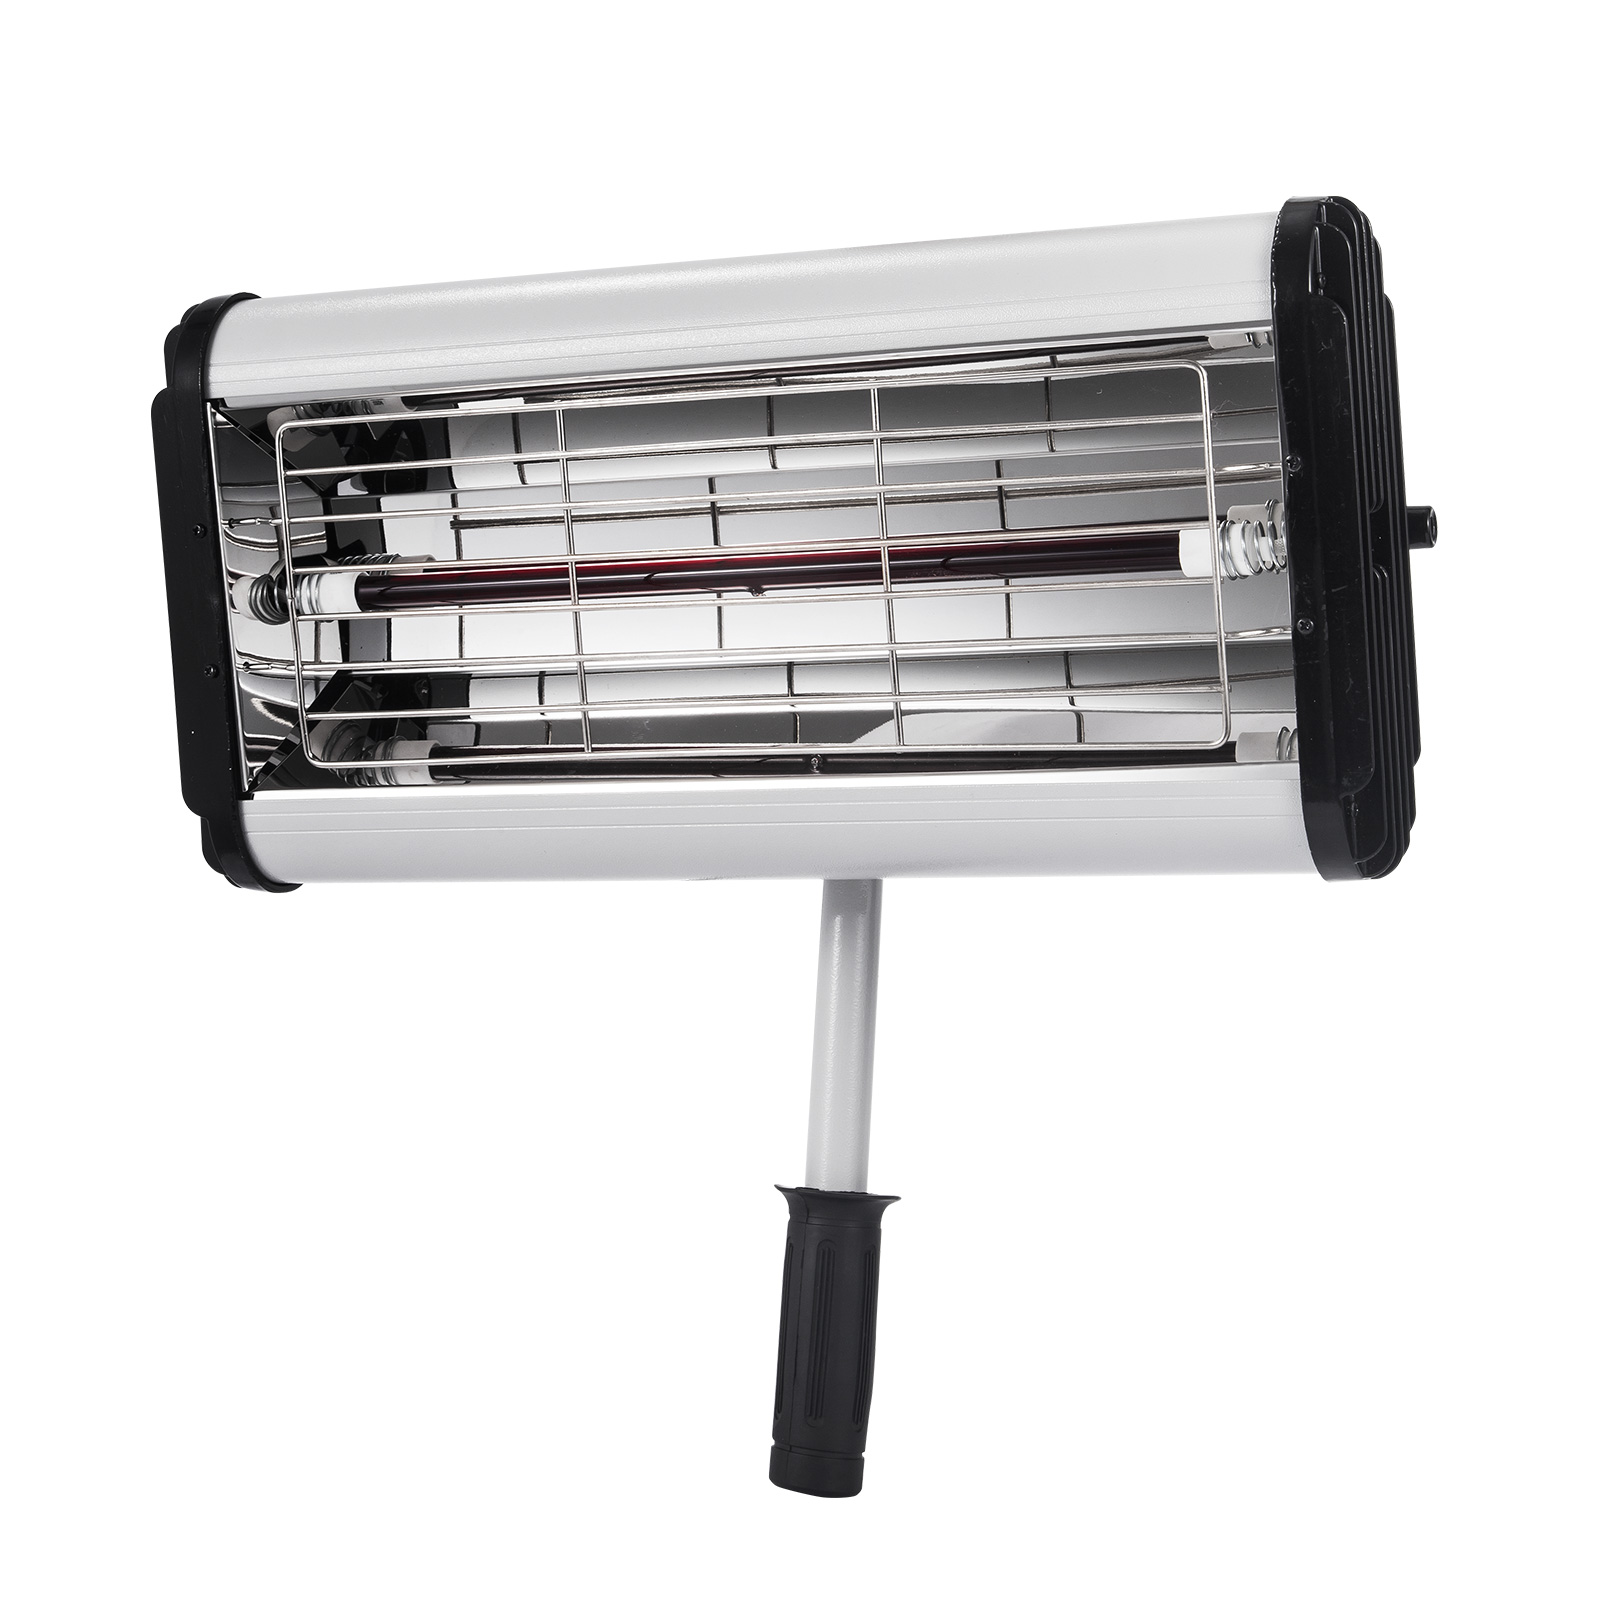 1 Kw Infrared Paint Dryer Shortwave Body Panel Curing Lamp